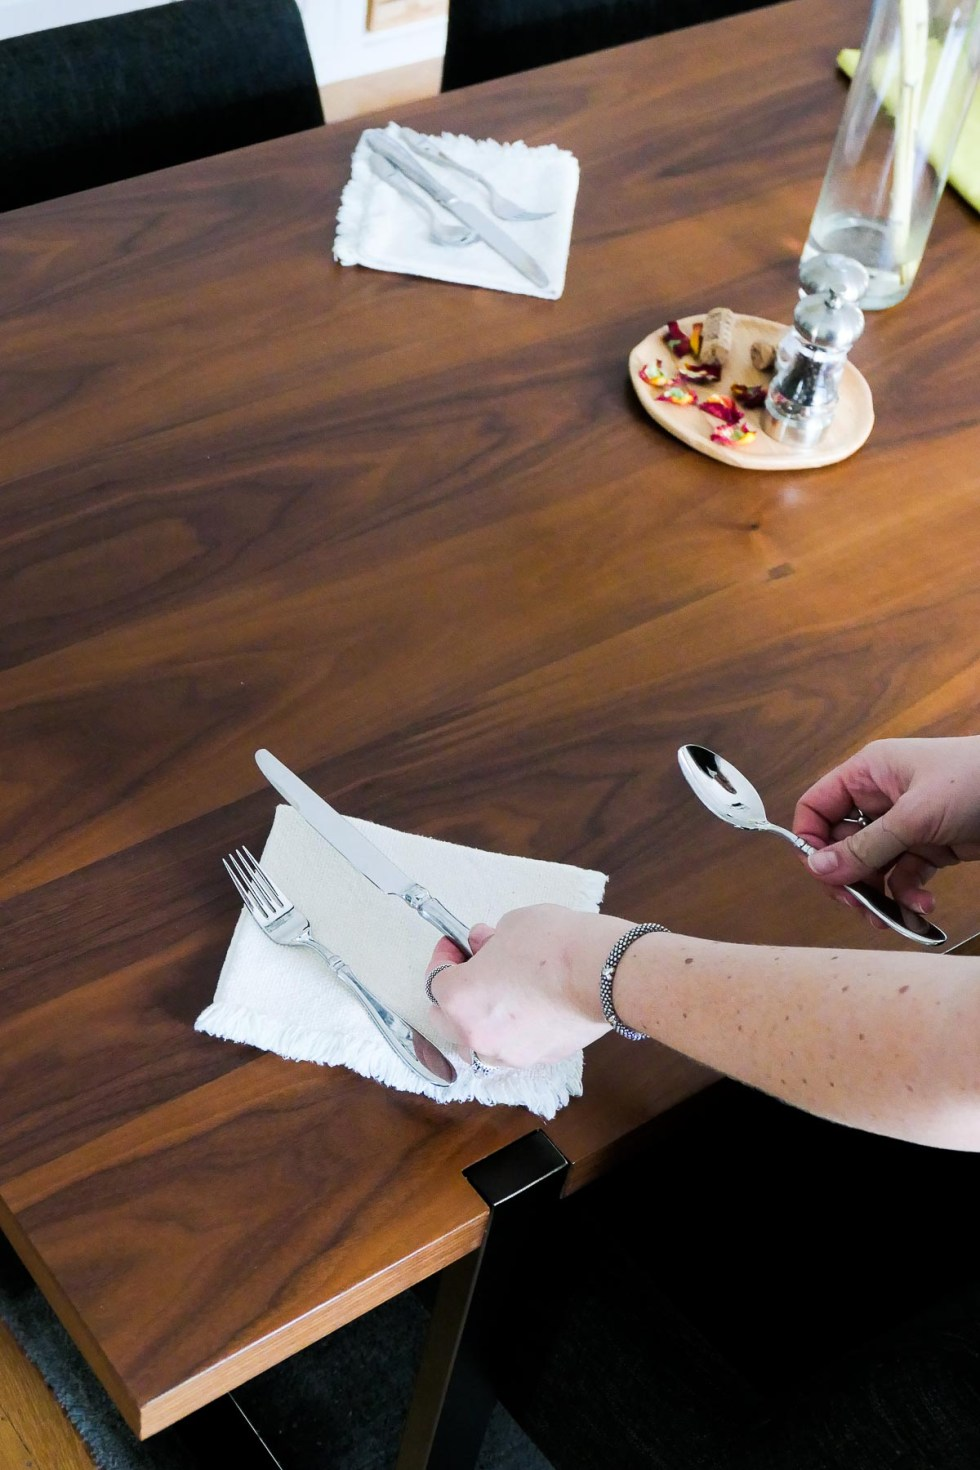 Setting the Table - How to Stop Using Paper Towels